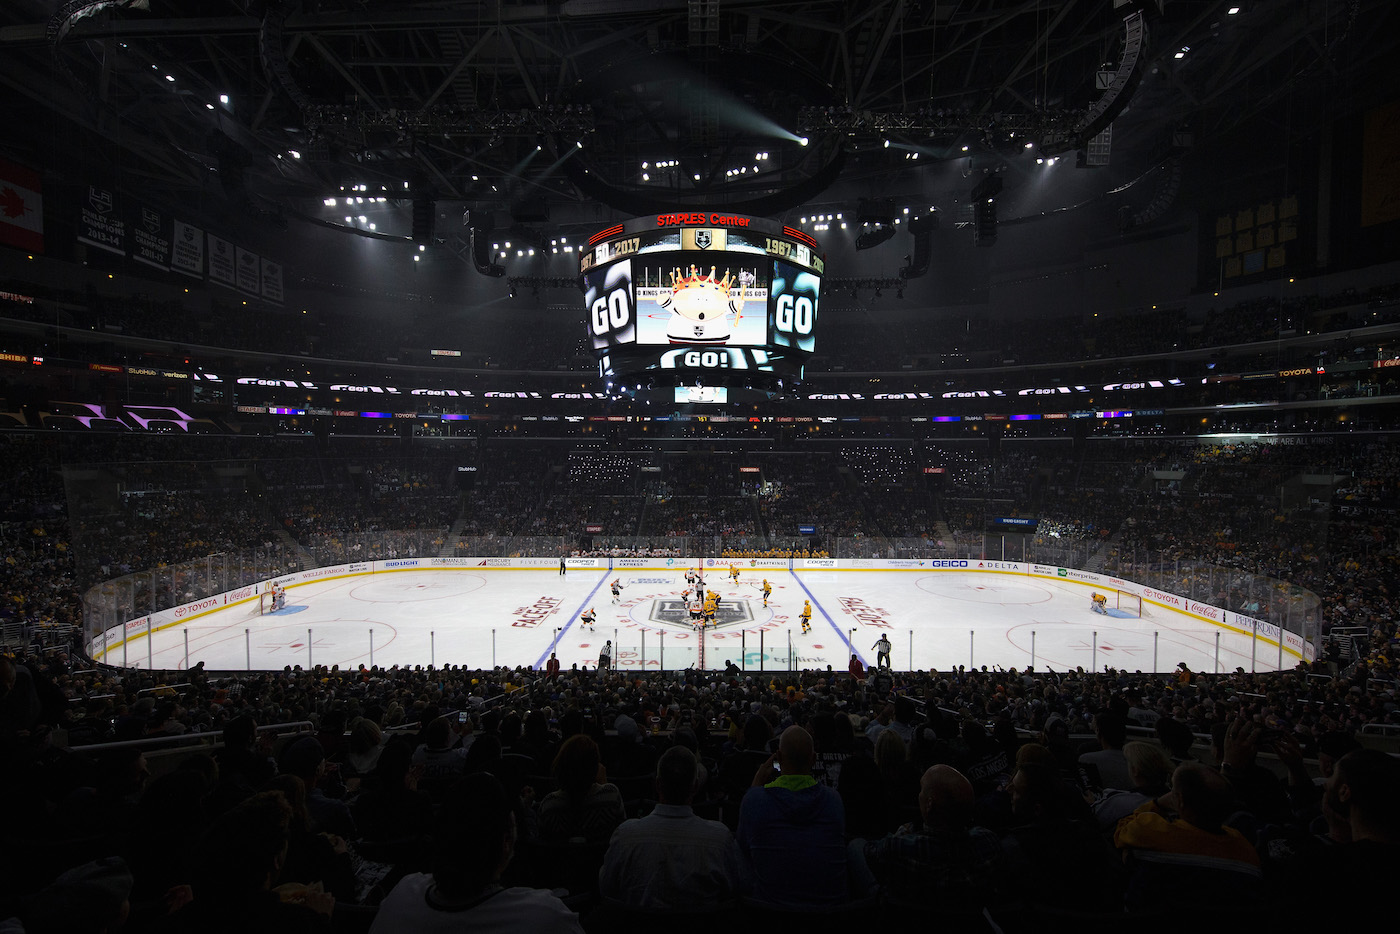 Il ghiaccio allo Staples Center  Sean M. Haffey/Getty Images)